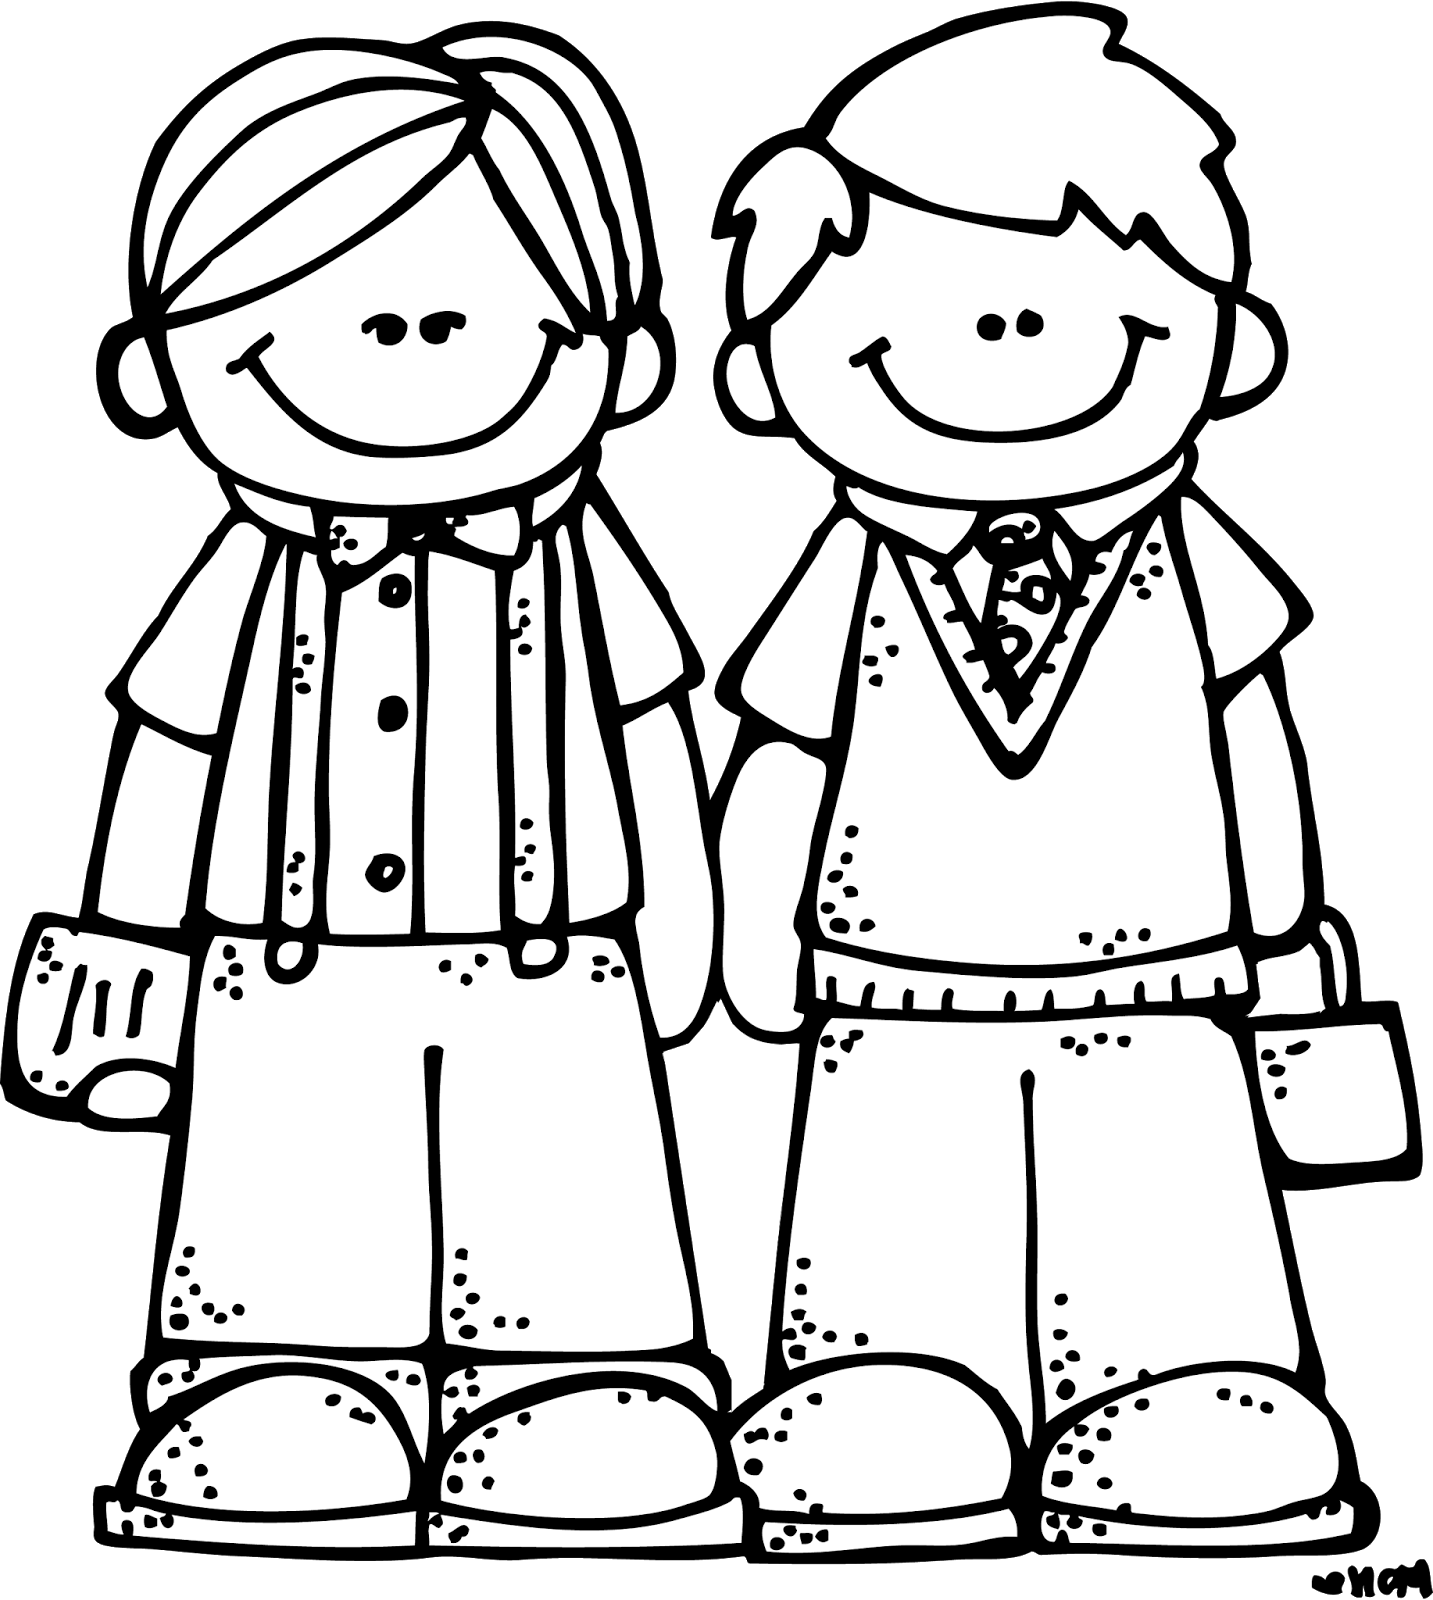 Friendship black and white. Lds clipart prayer